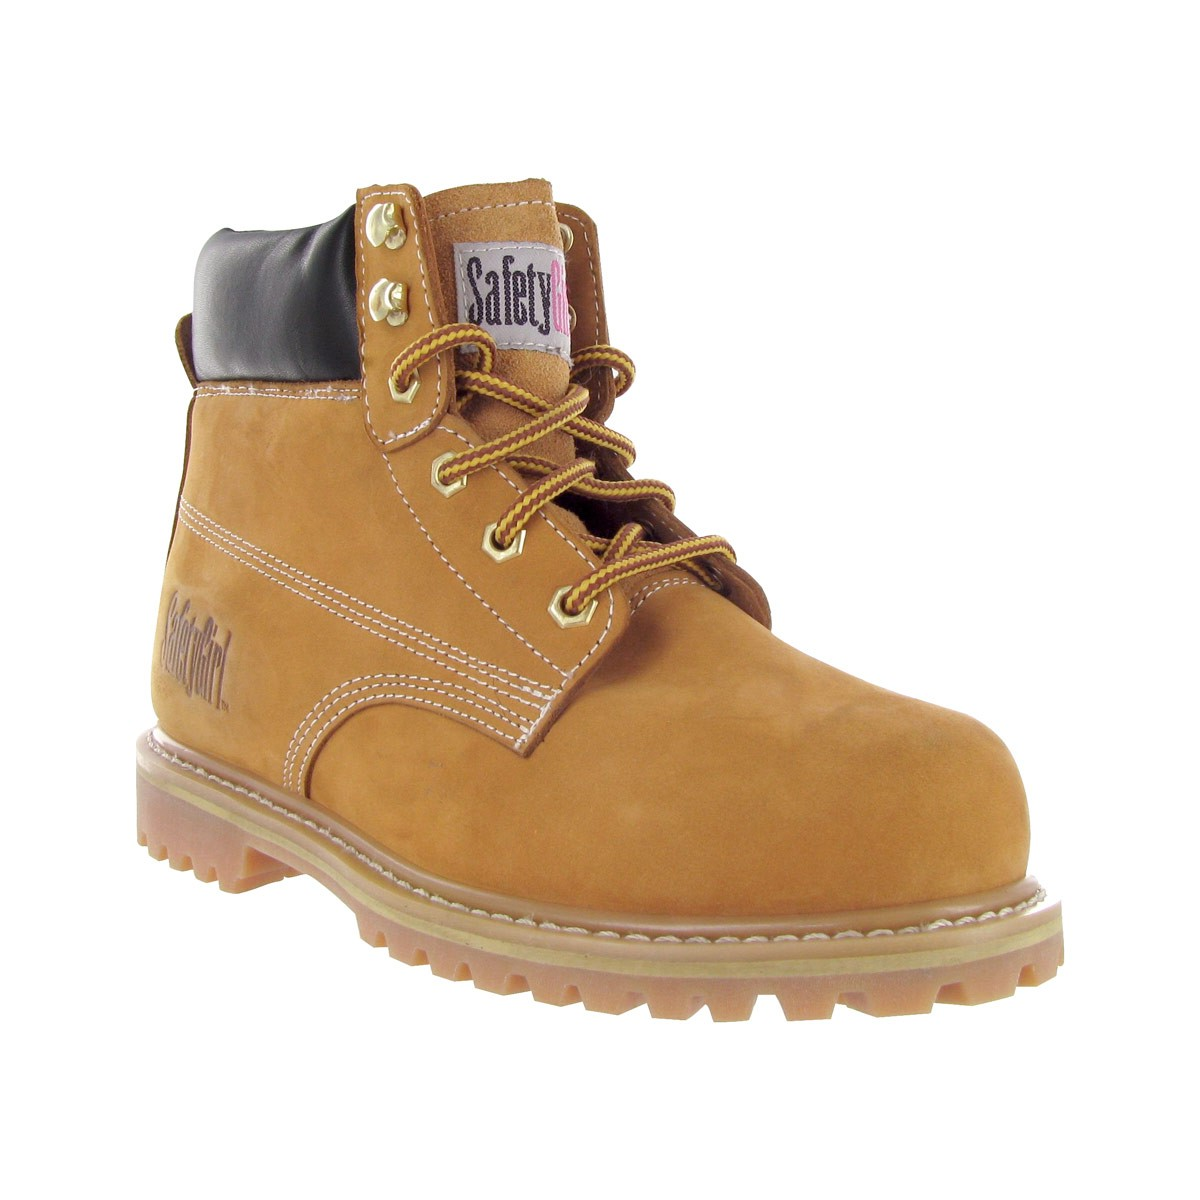 Safety Girl Steel Toe Waterproof Womens Work Boots - Tan - 10.5M ...